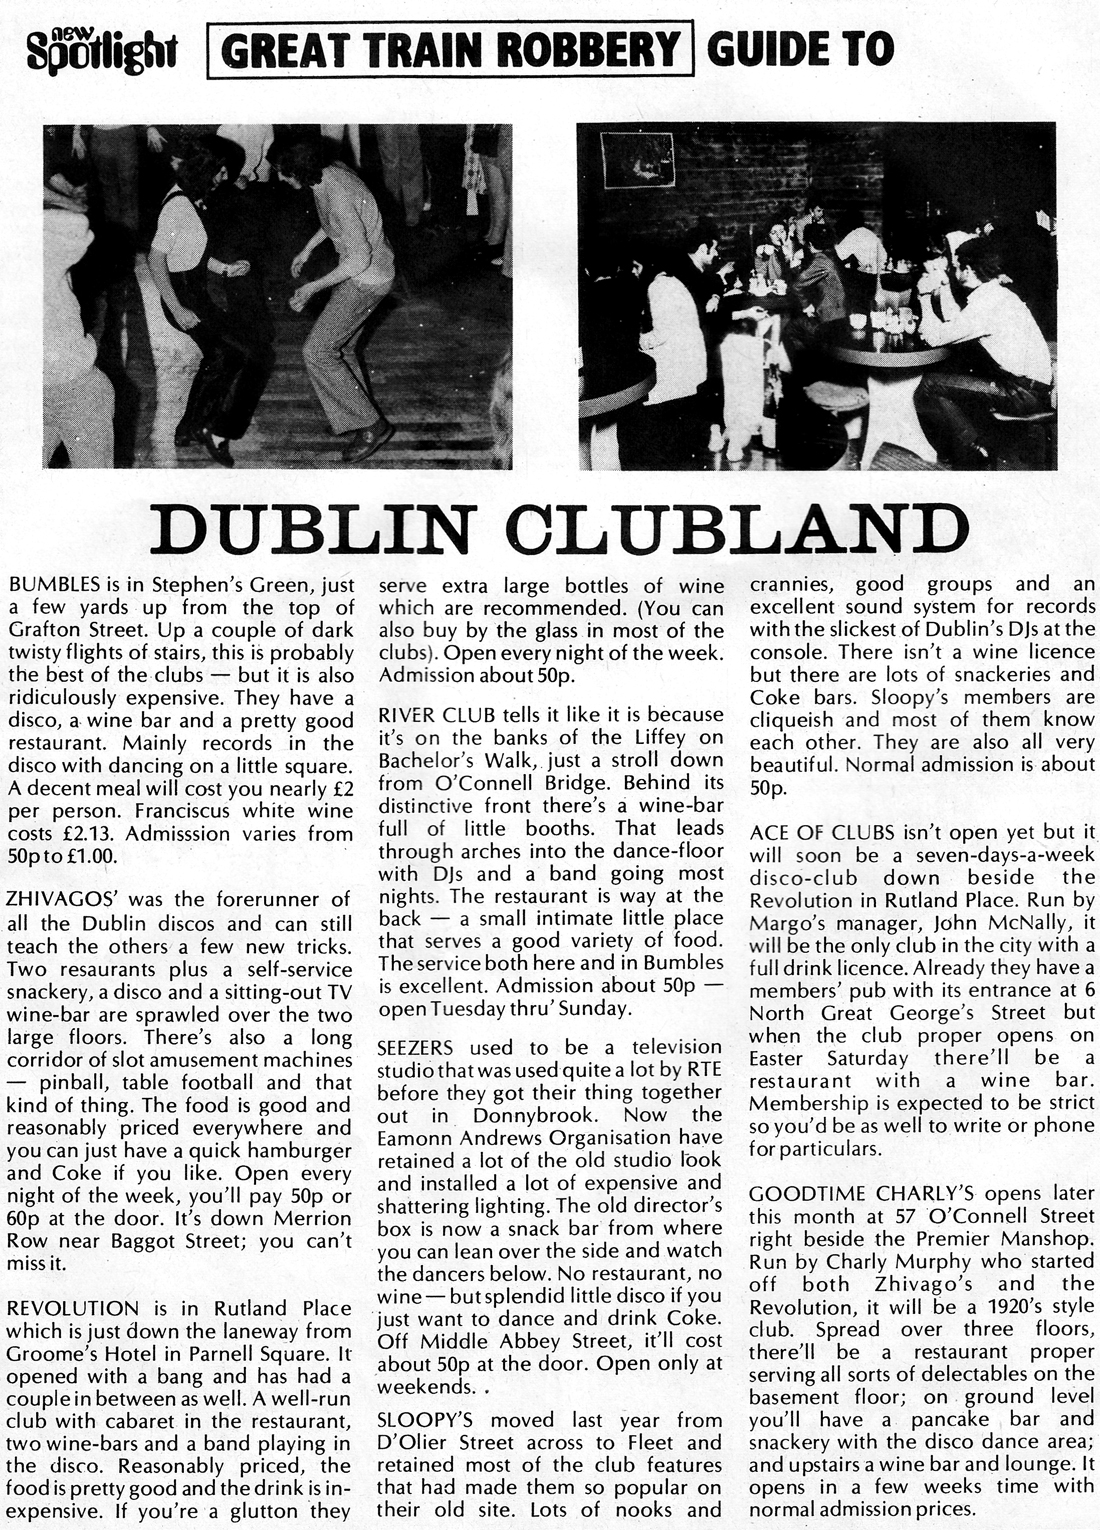 Dublin Nightclubs-1972 - Bubbles